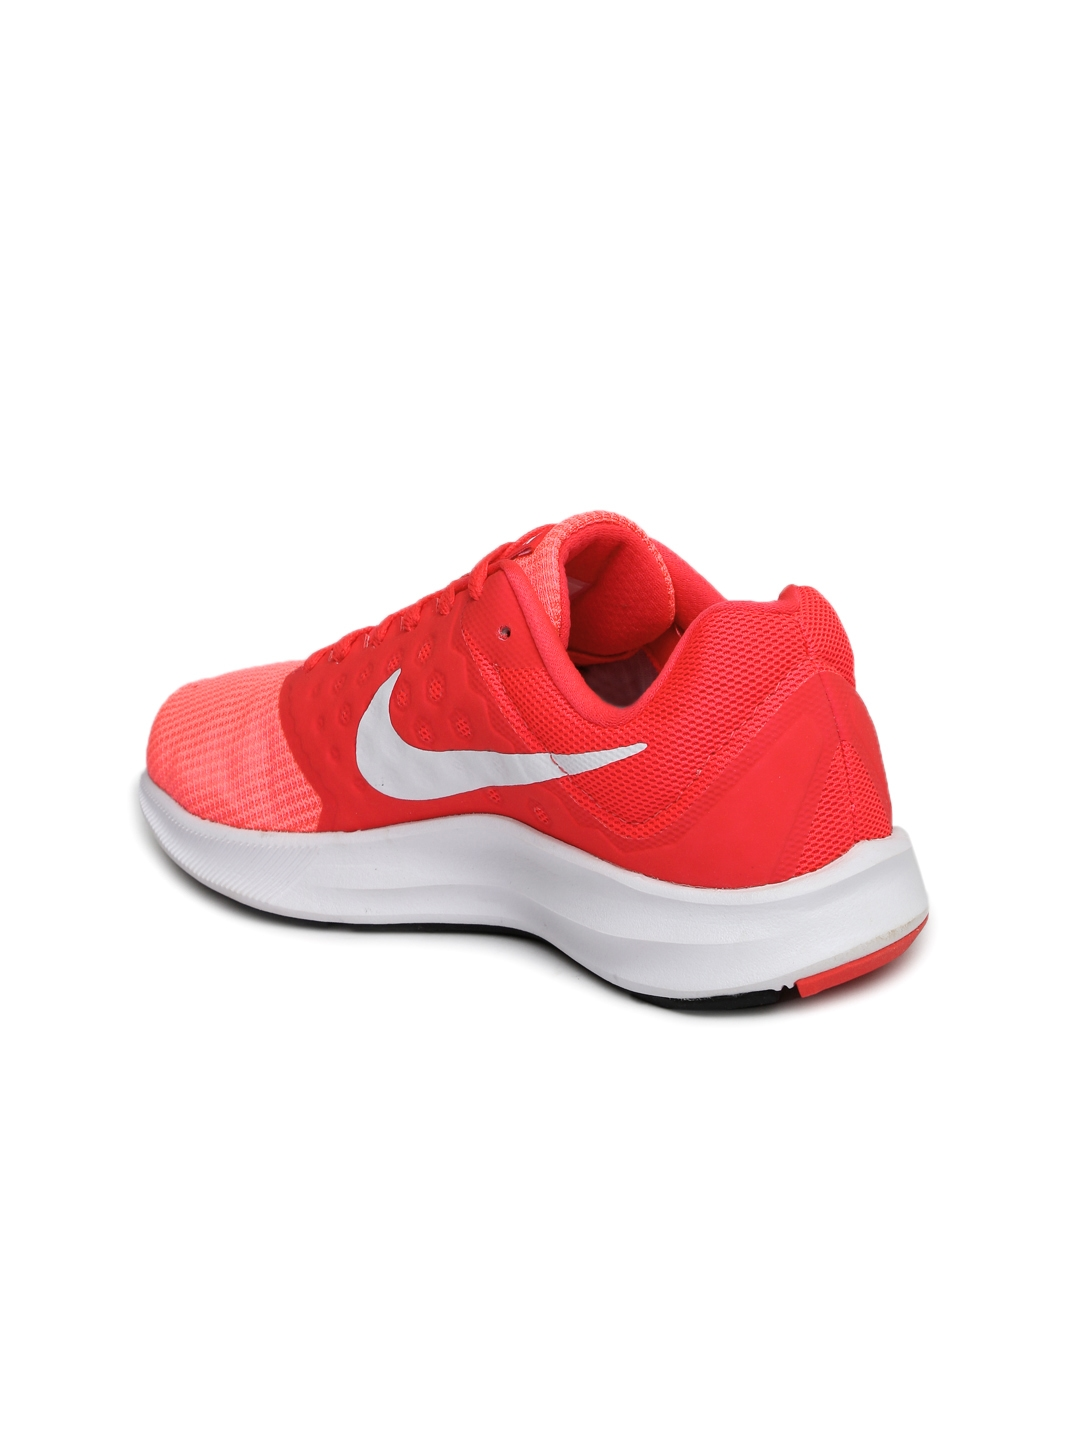 fa012f2a0569 Buy Nike Women Pink DOWNSHIFTER 7 Running Shoes - Sports Shoes for ...